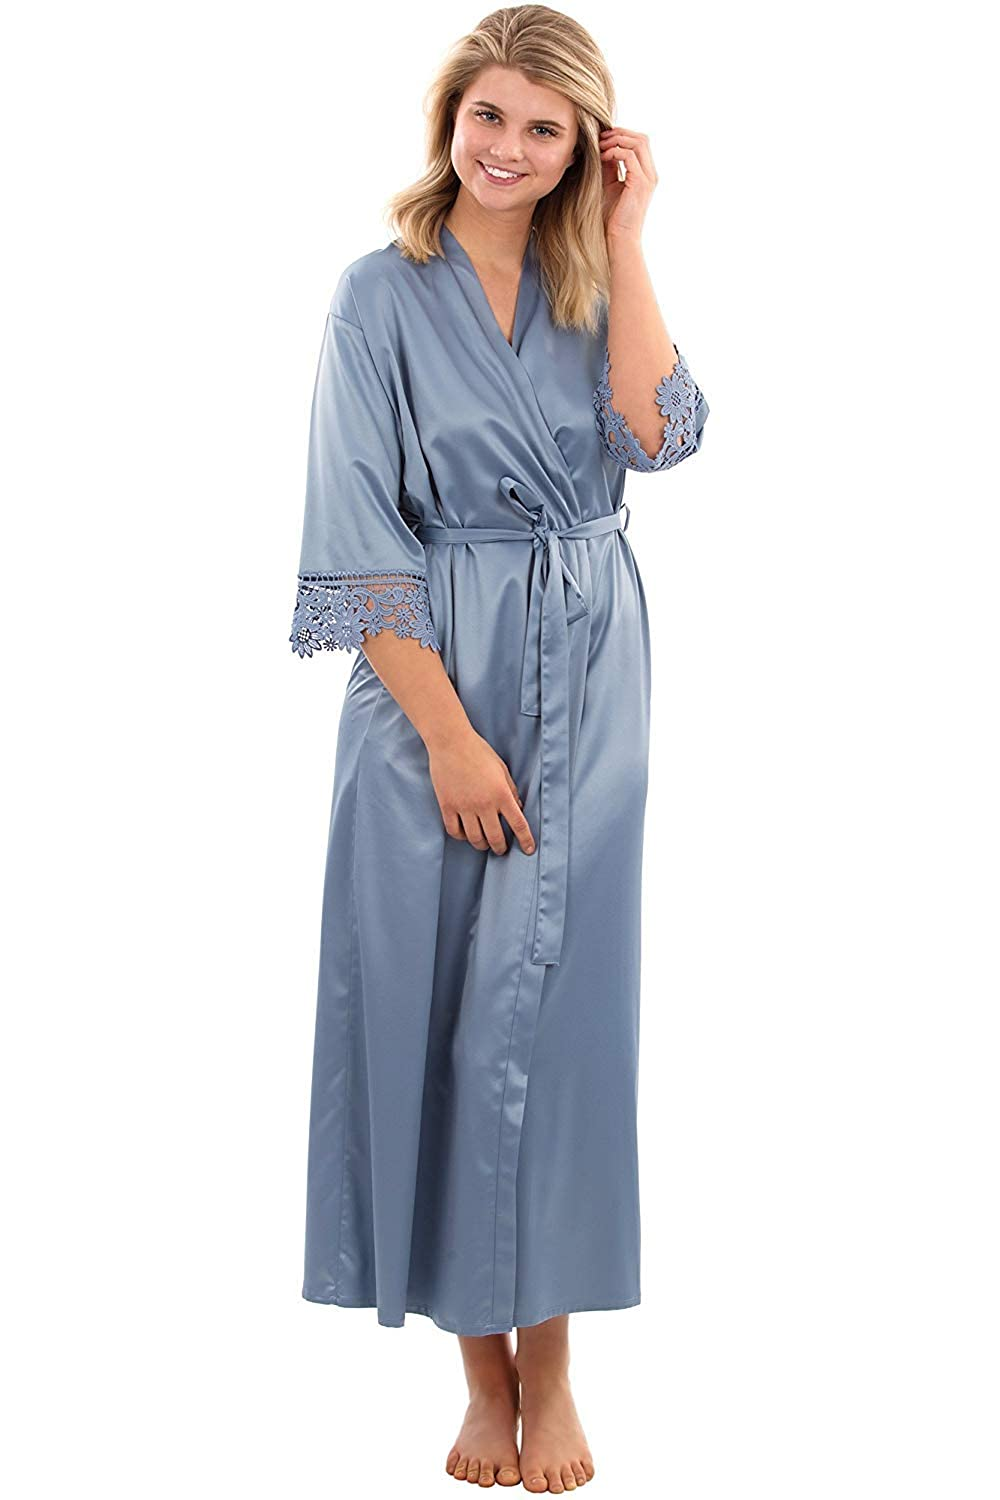 bluee Michealboy Long Bathrobe for Wedding Bride Dressing Gowns Lace Cuff Soft Satin